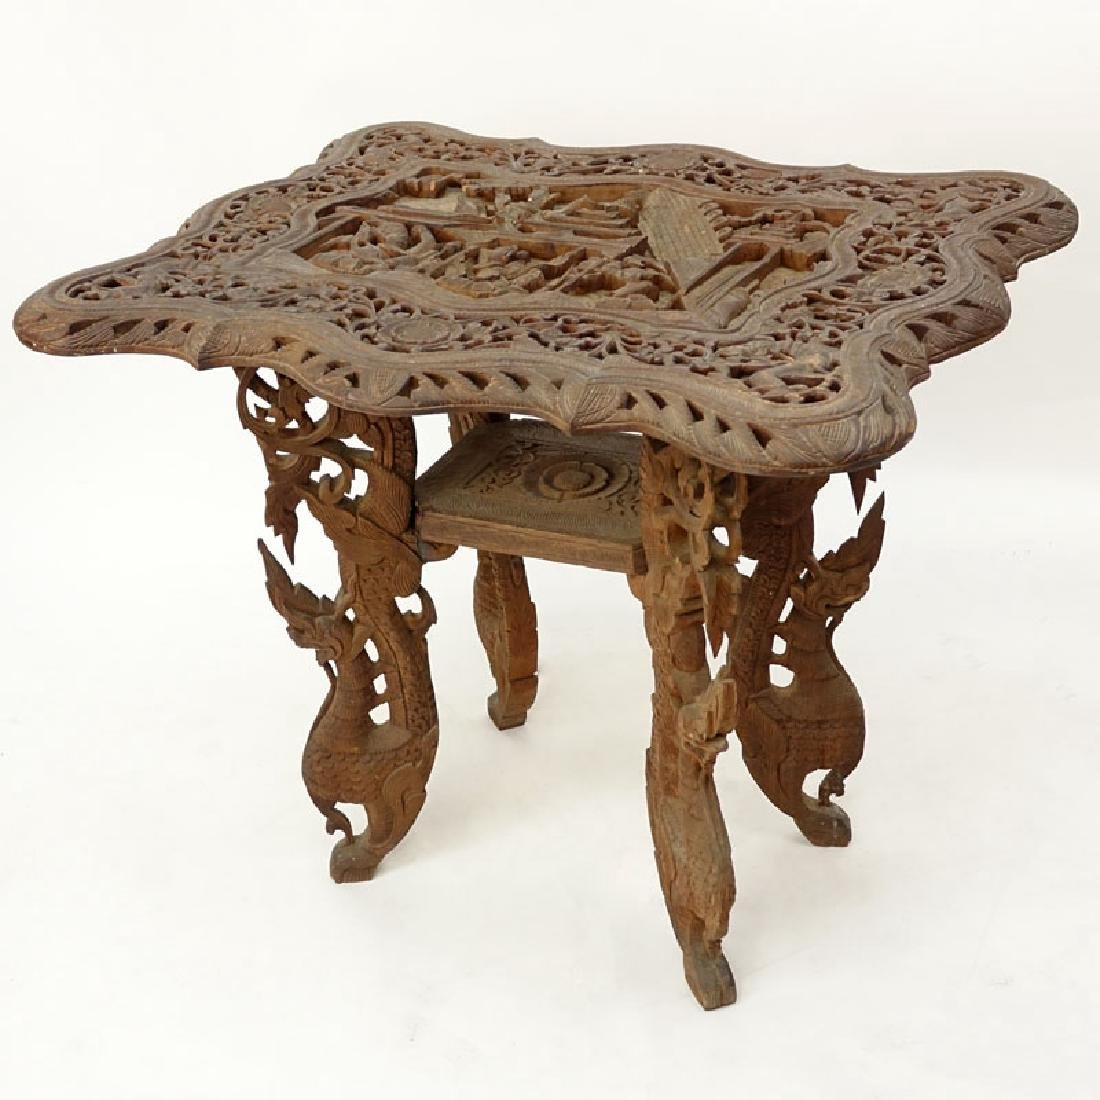 20th Century Thai Carved Teak Wood Table. Relief